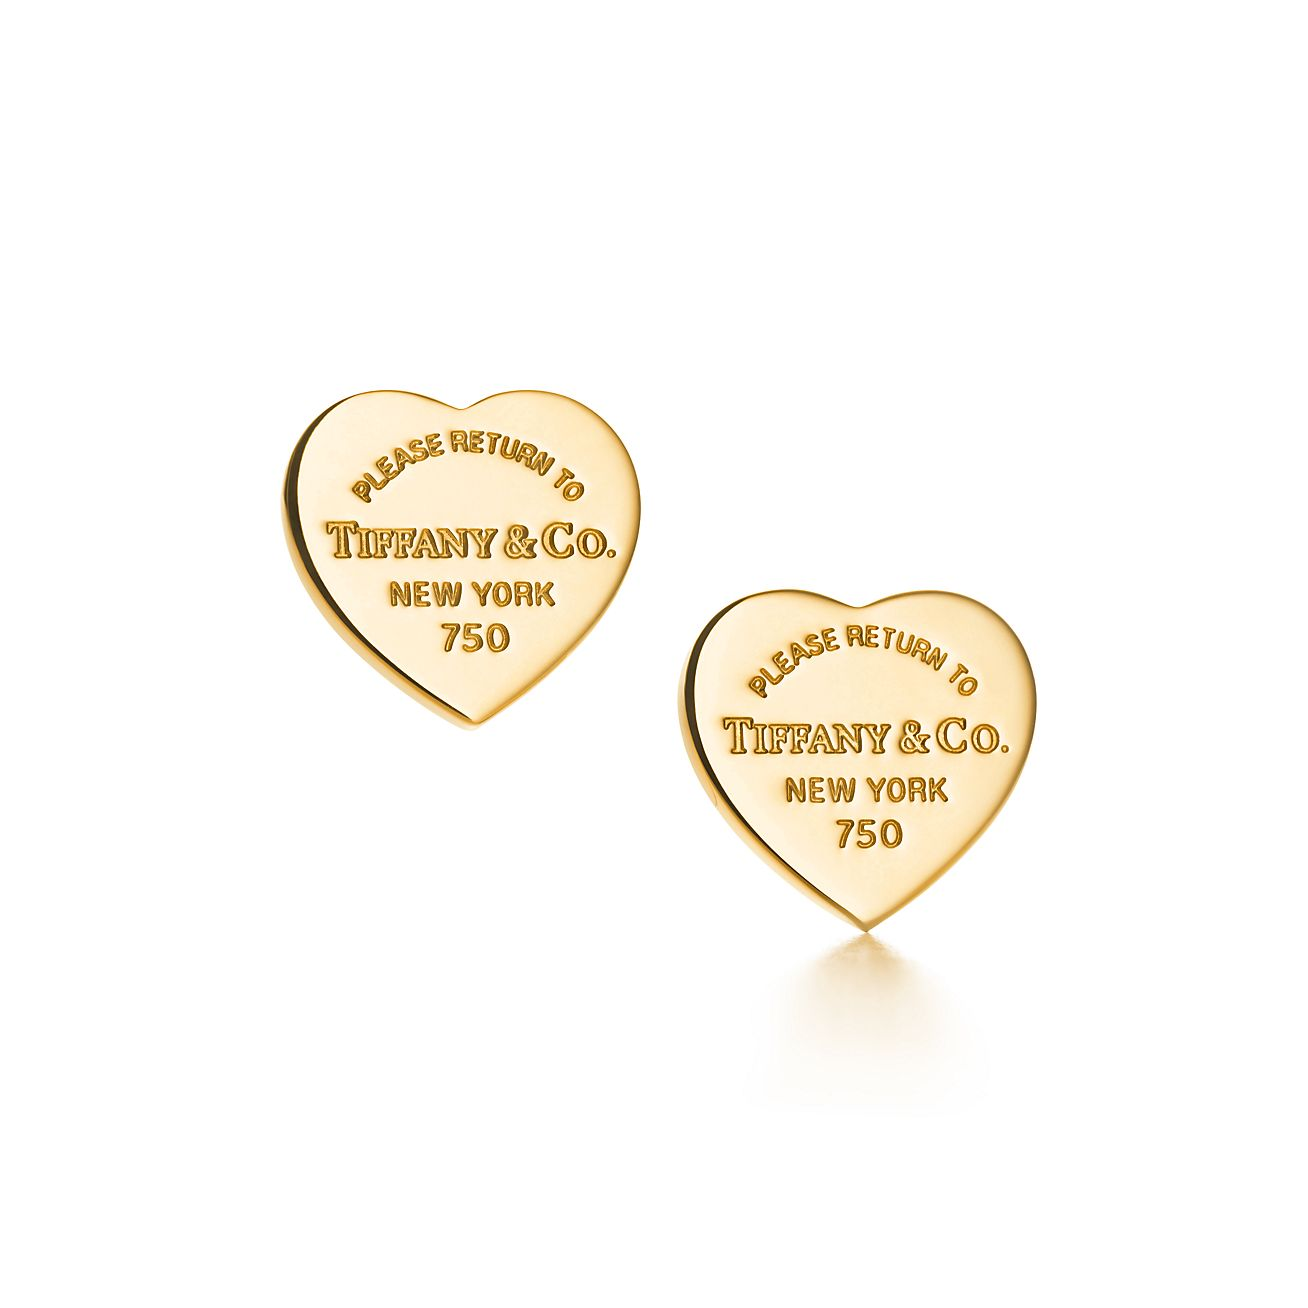 425b5118cd145 Tiffany Rose Gold Heart Earrings - Best All Earring Photos ...